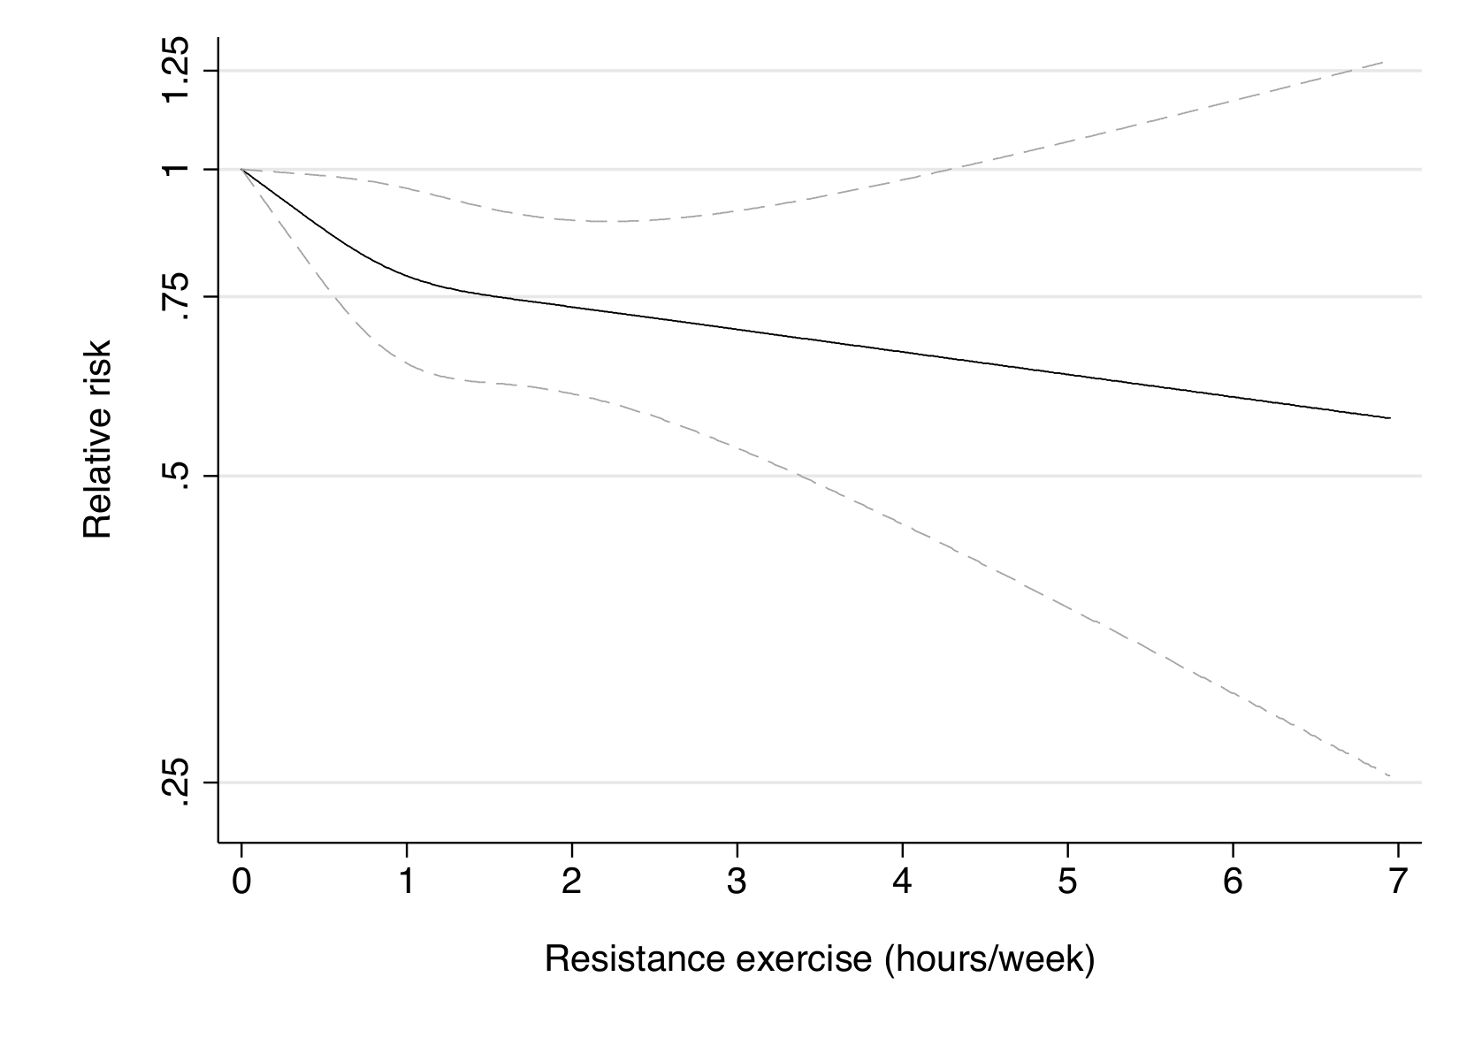 Dose-response relationship between resistance exercise (hours/week) and risk of type 2 diabetes in women from the Nurses' Health Study II.